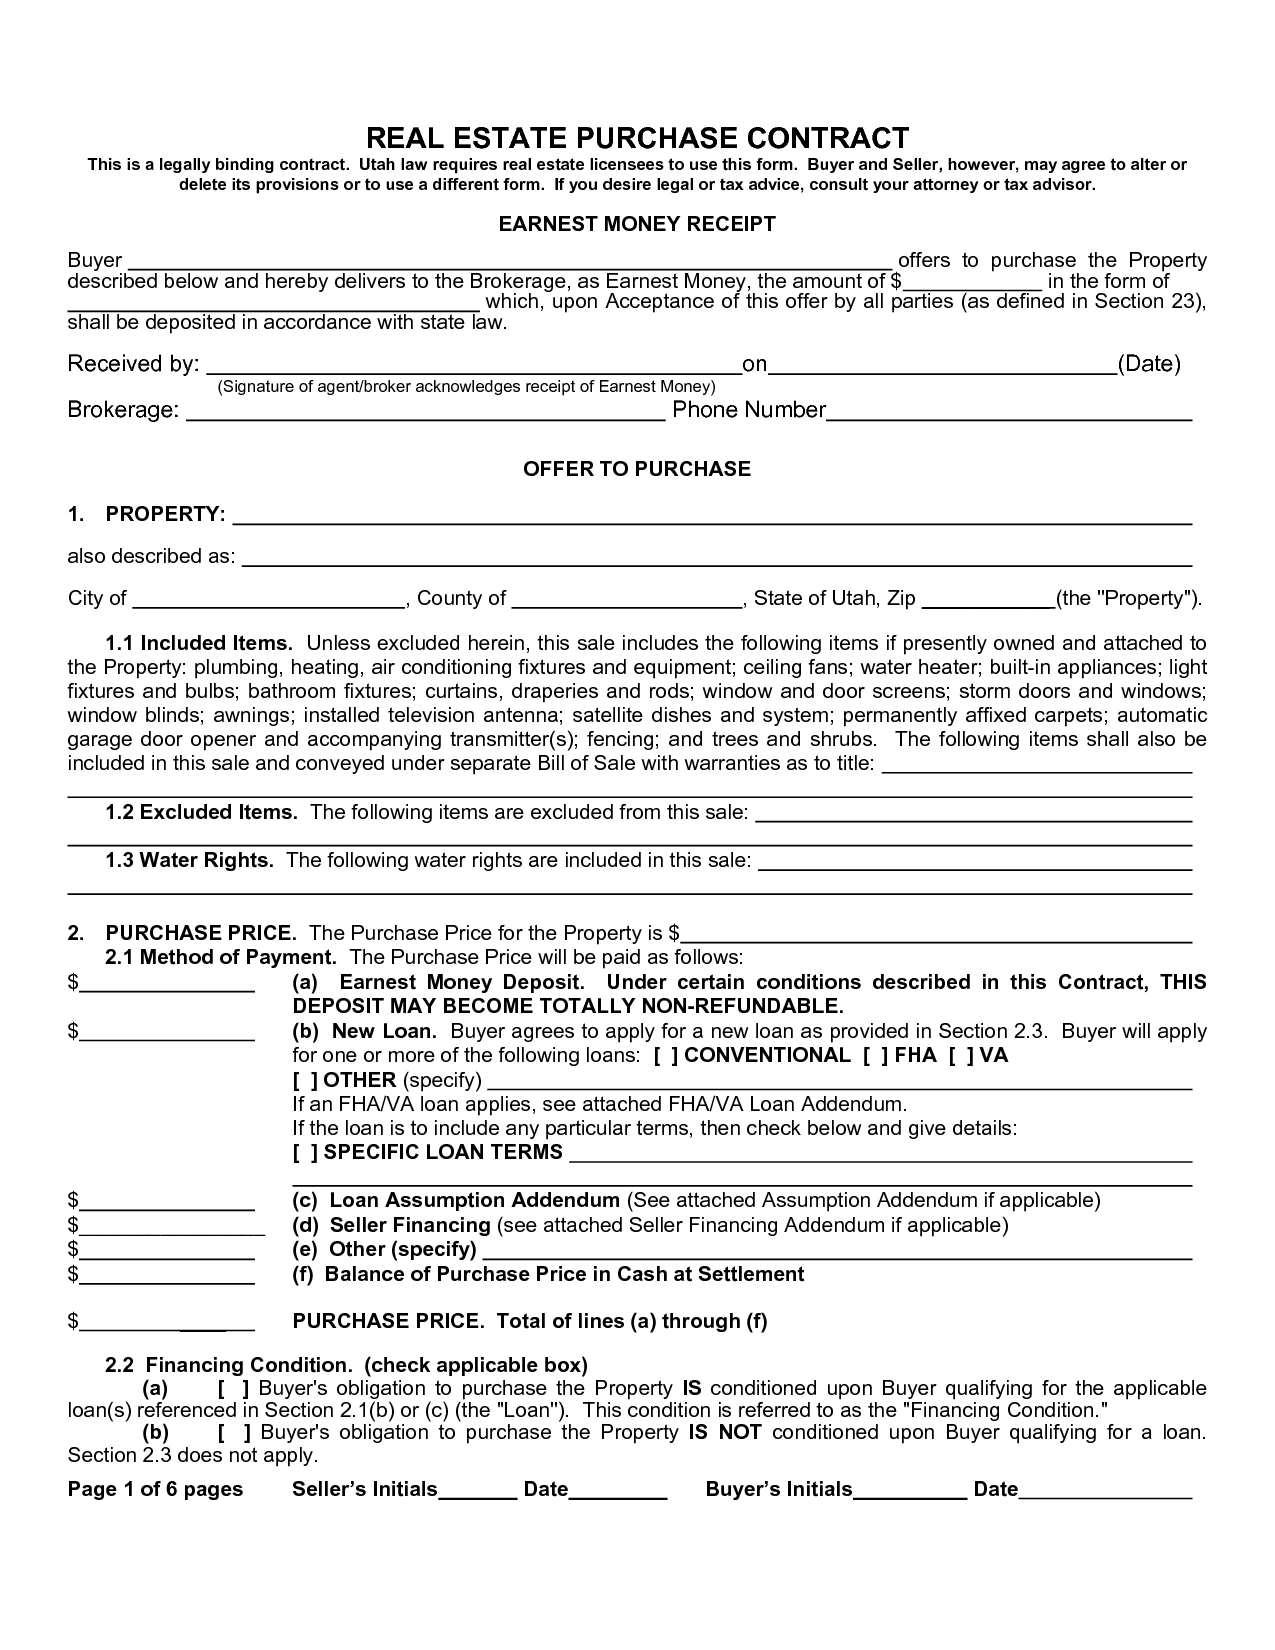 Real estate purchase agreement form sample image gallery for Private home sale contract template